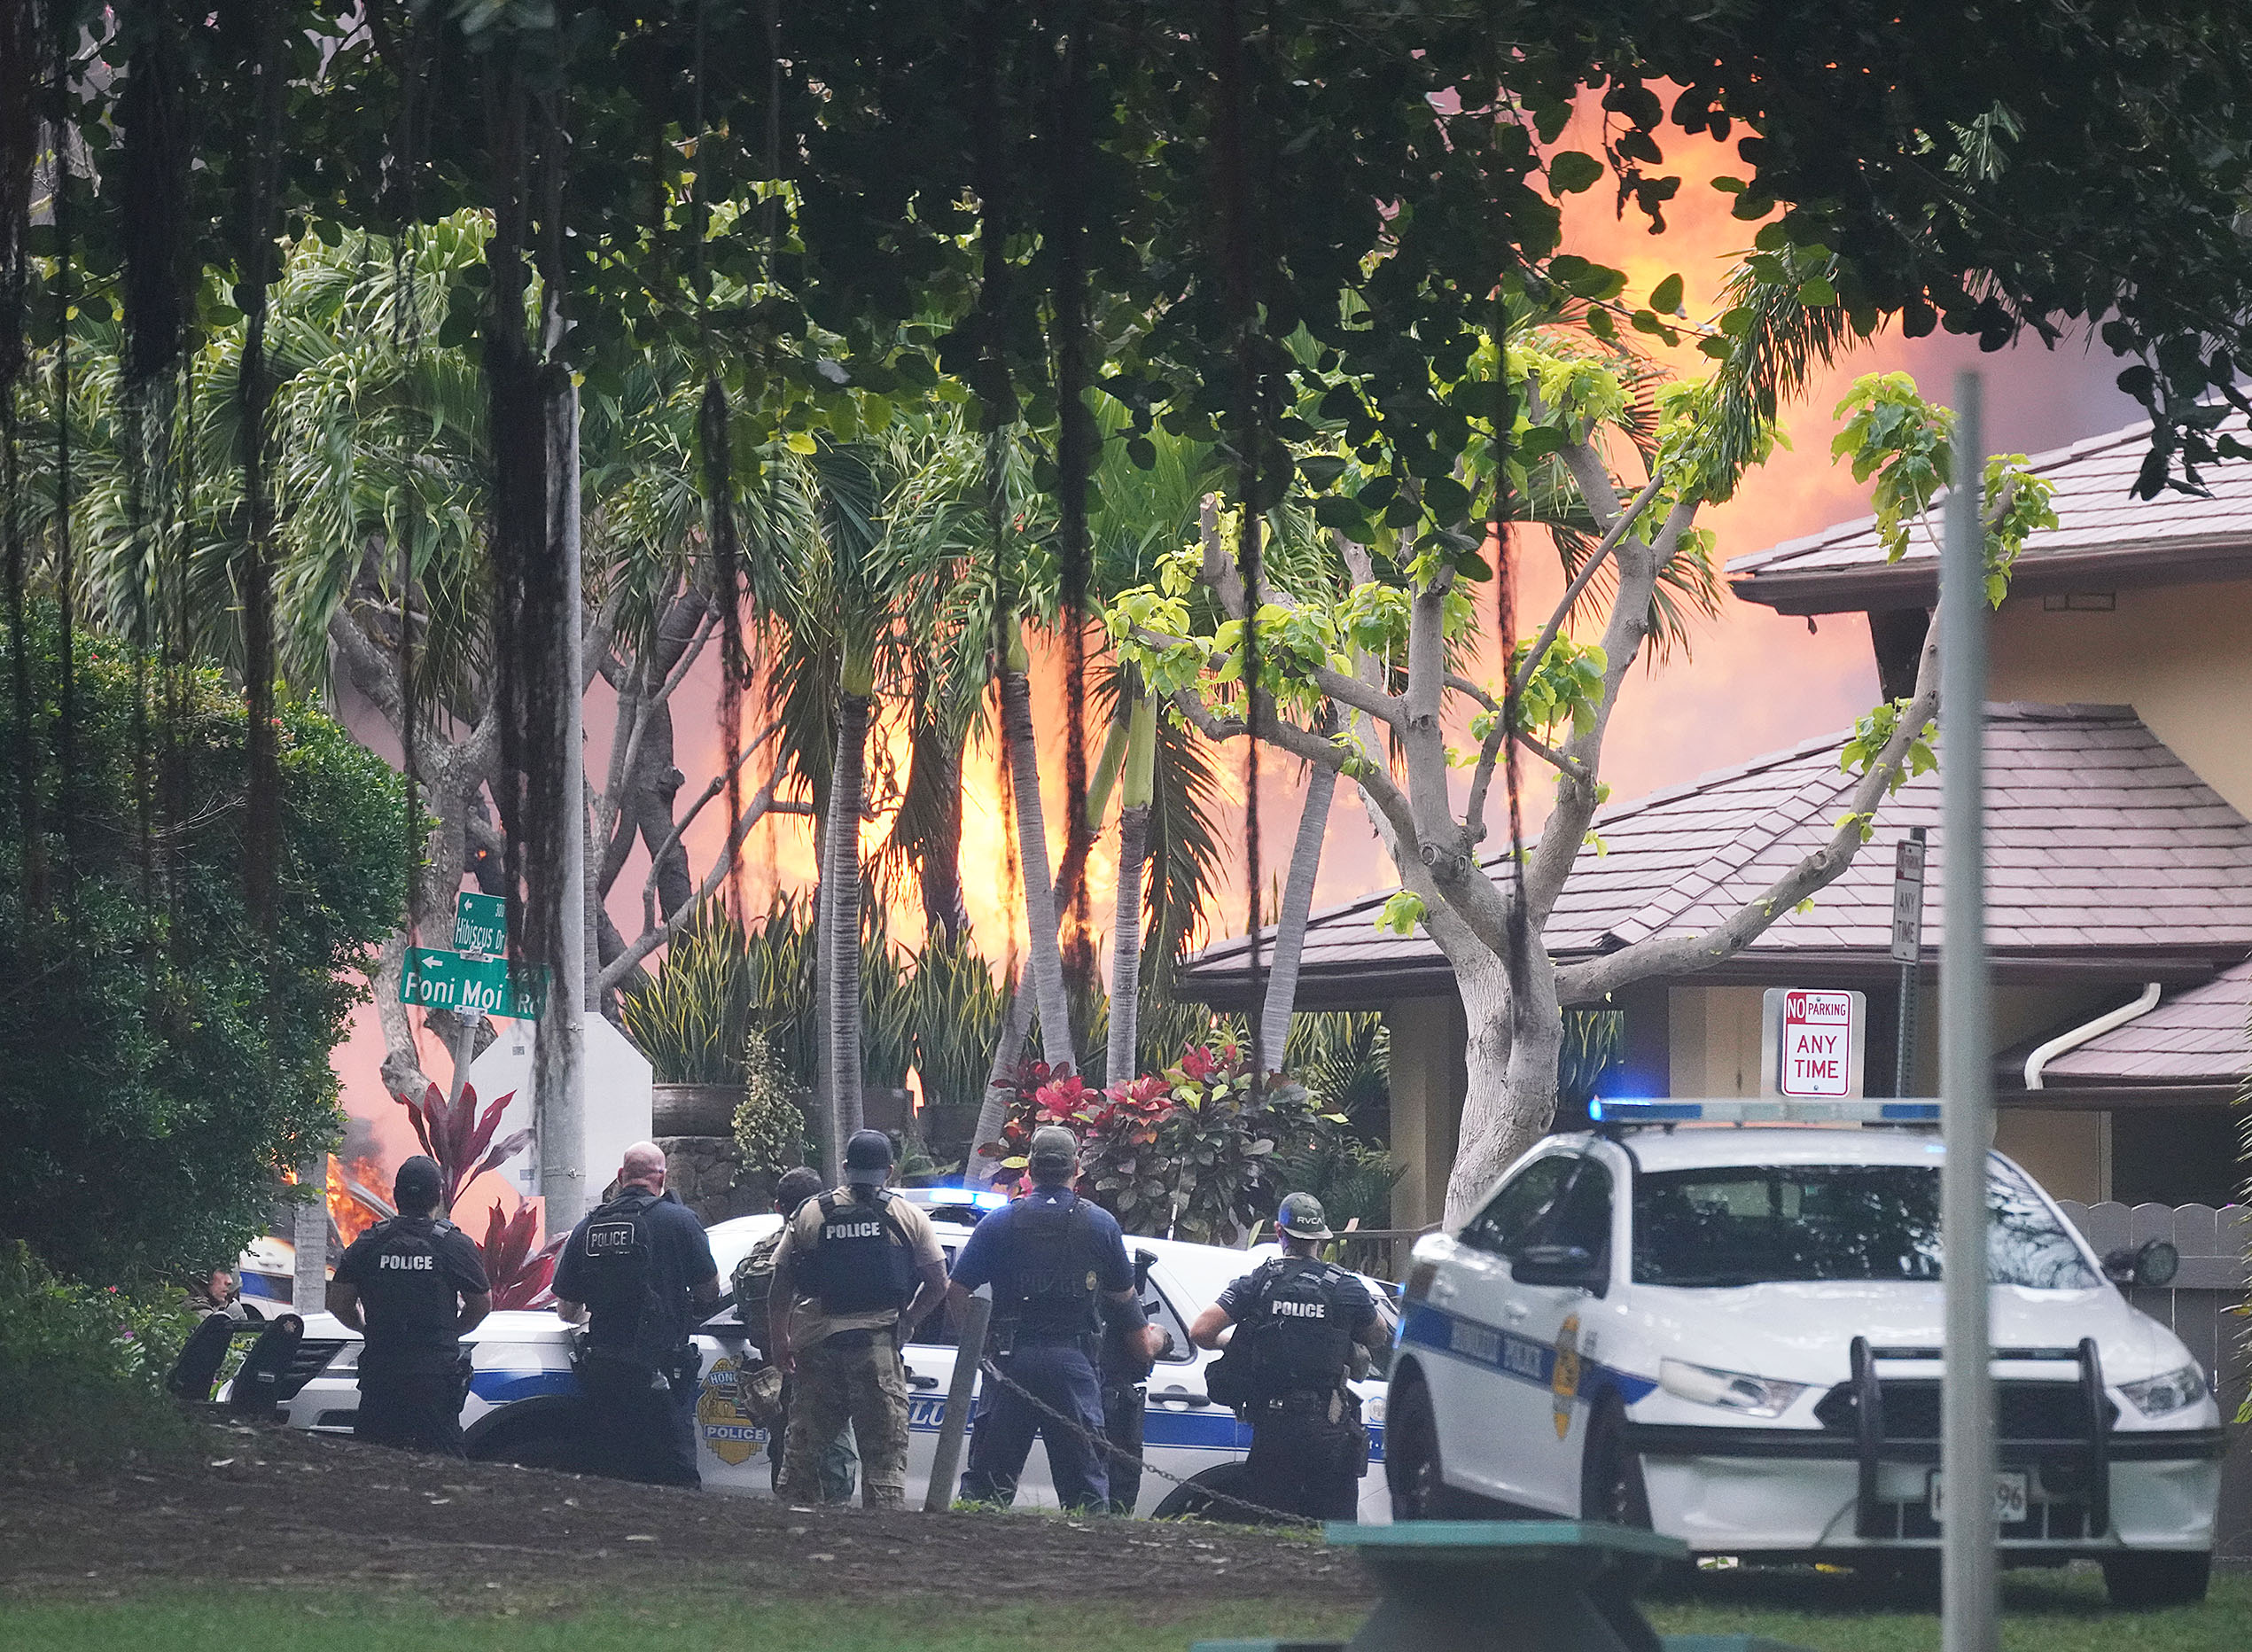 <p>Honolulu began 2020 with the fatal shooting of two police officers — Tiffany Enriquez and Kaulike Kalama — on a Sunday morning near Diamond Head. The suspect was identified as 69-year-old Jerry Hanel, who died in a fire he allegedly set inside a home on Hibiscus Drive.</p> <p></p>